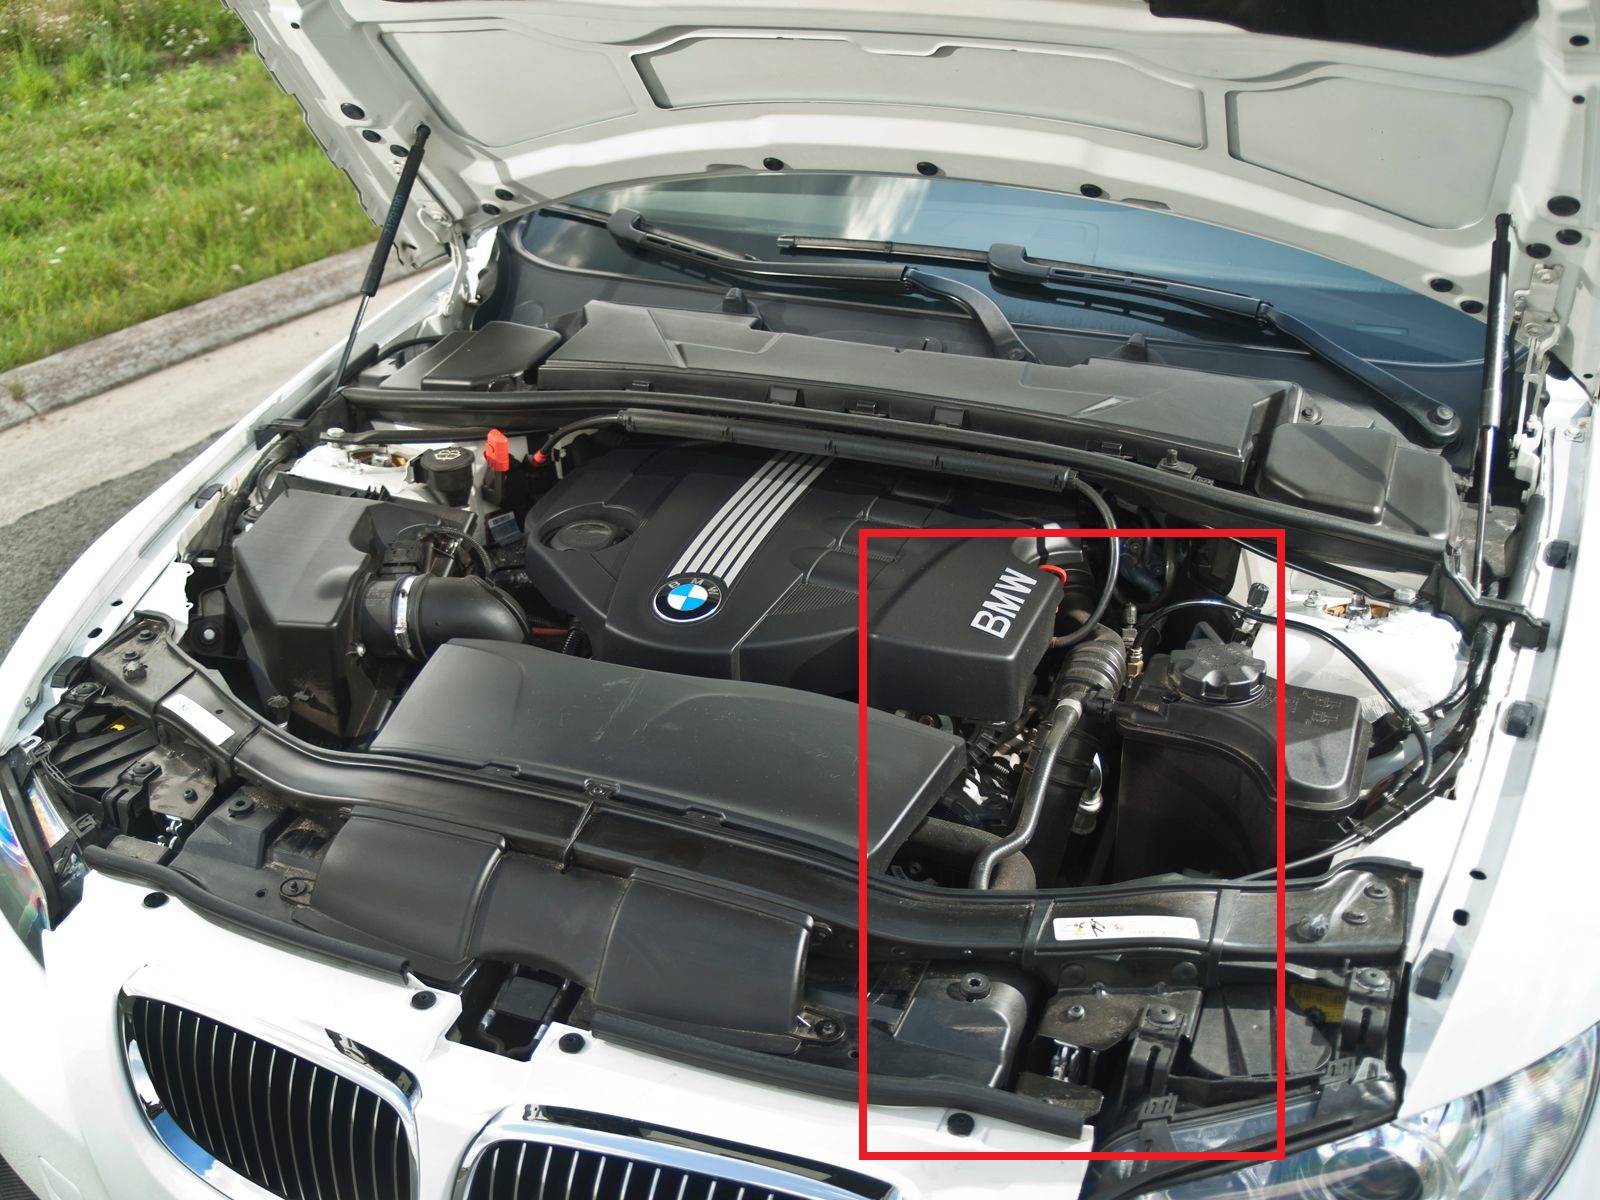 hight resolution of bmw 335i engine bay diagram wiring diagram schema 2007 bmw 335i engine diagram